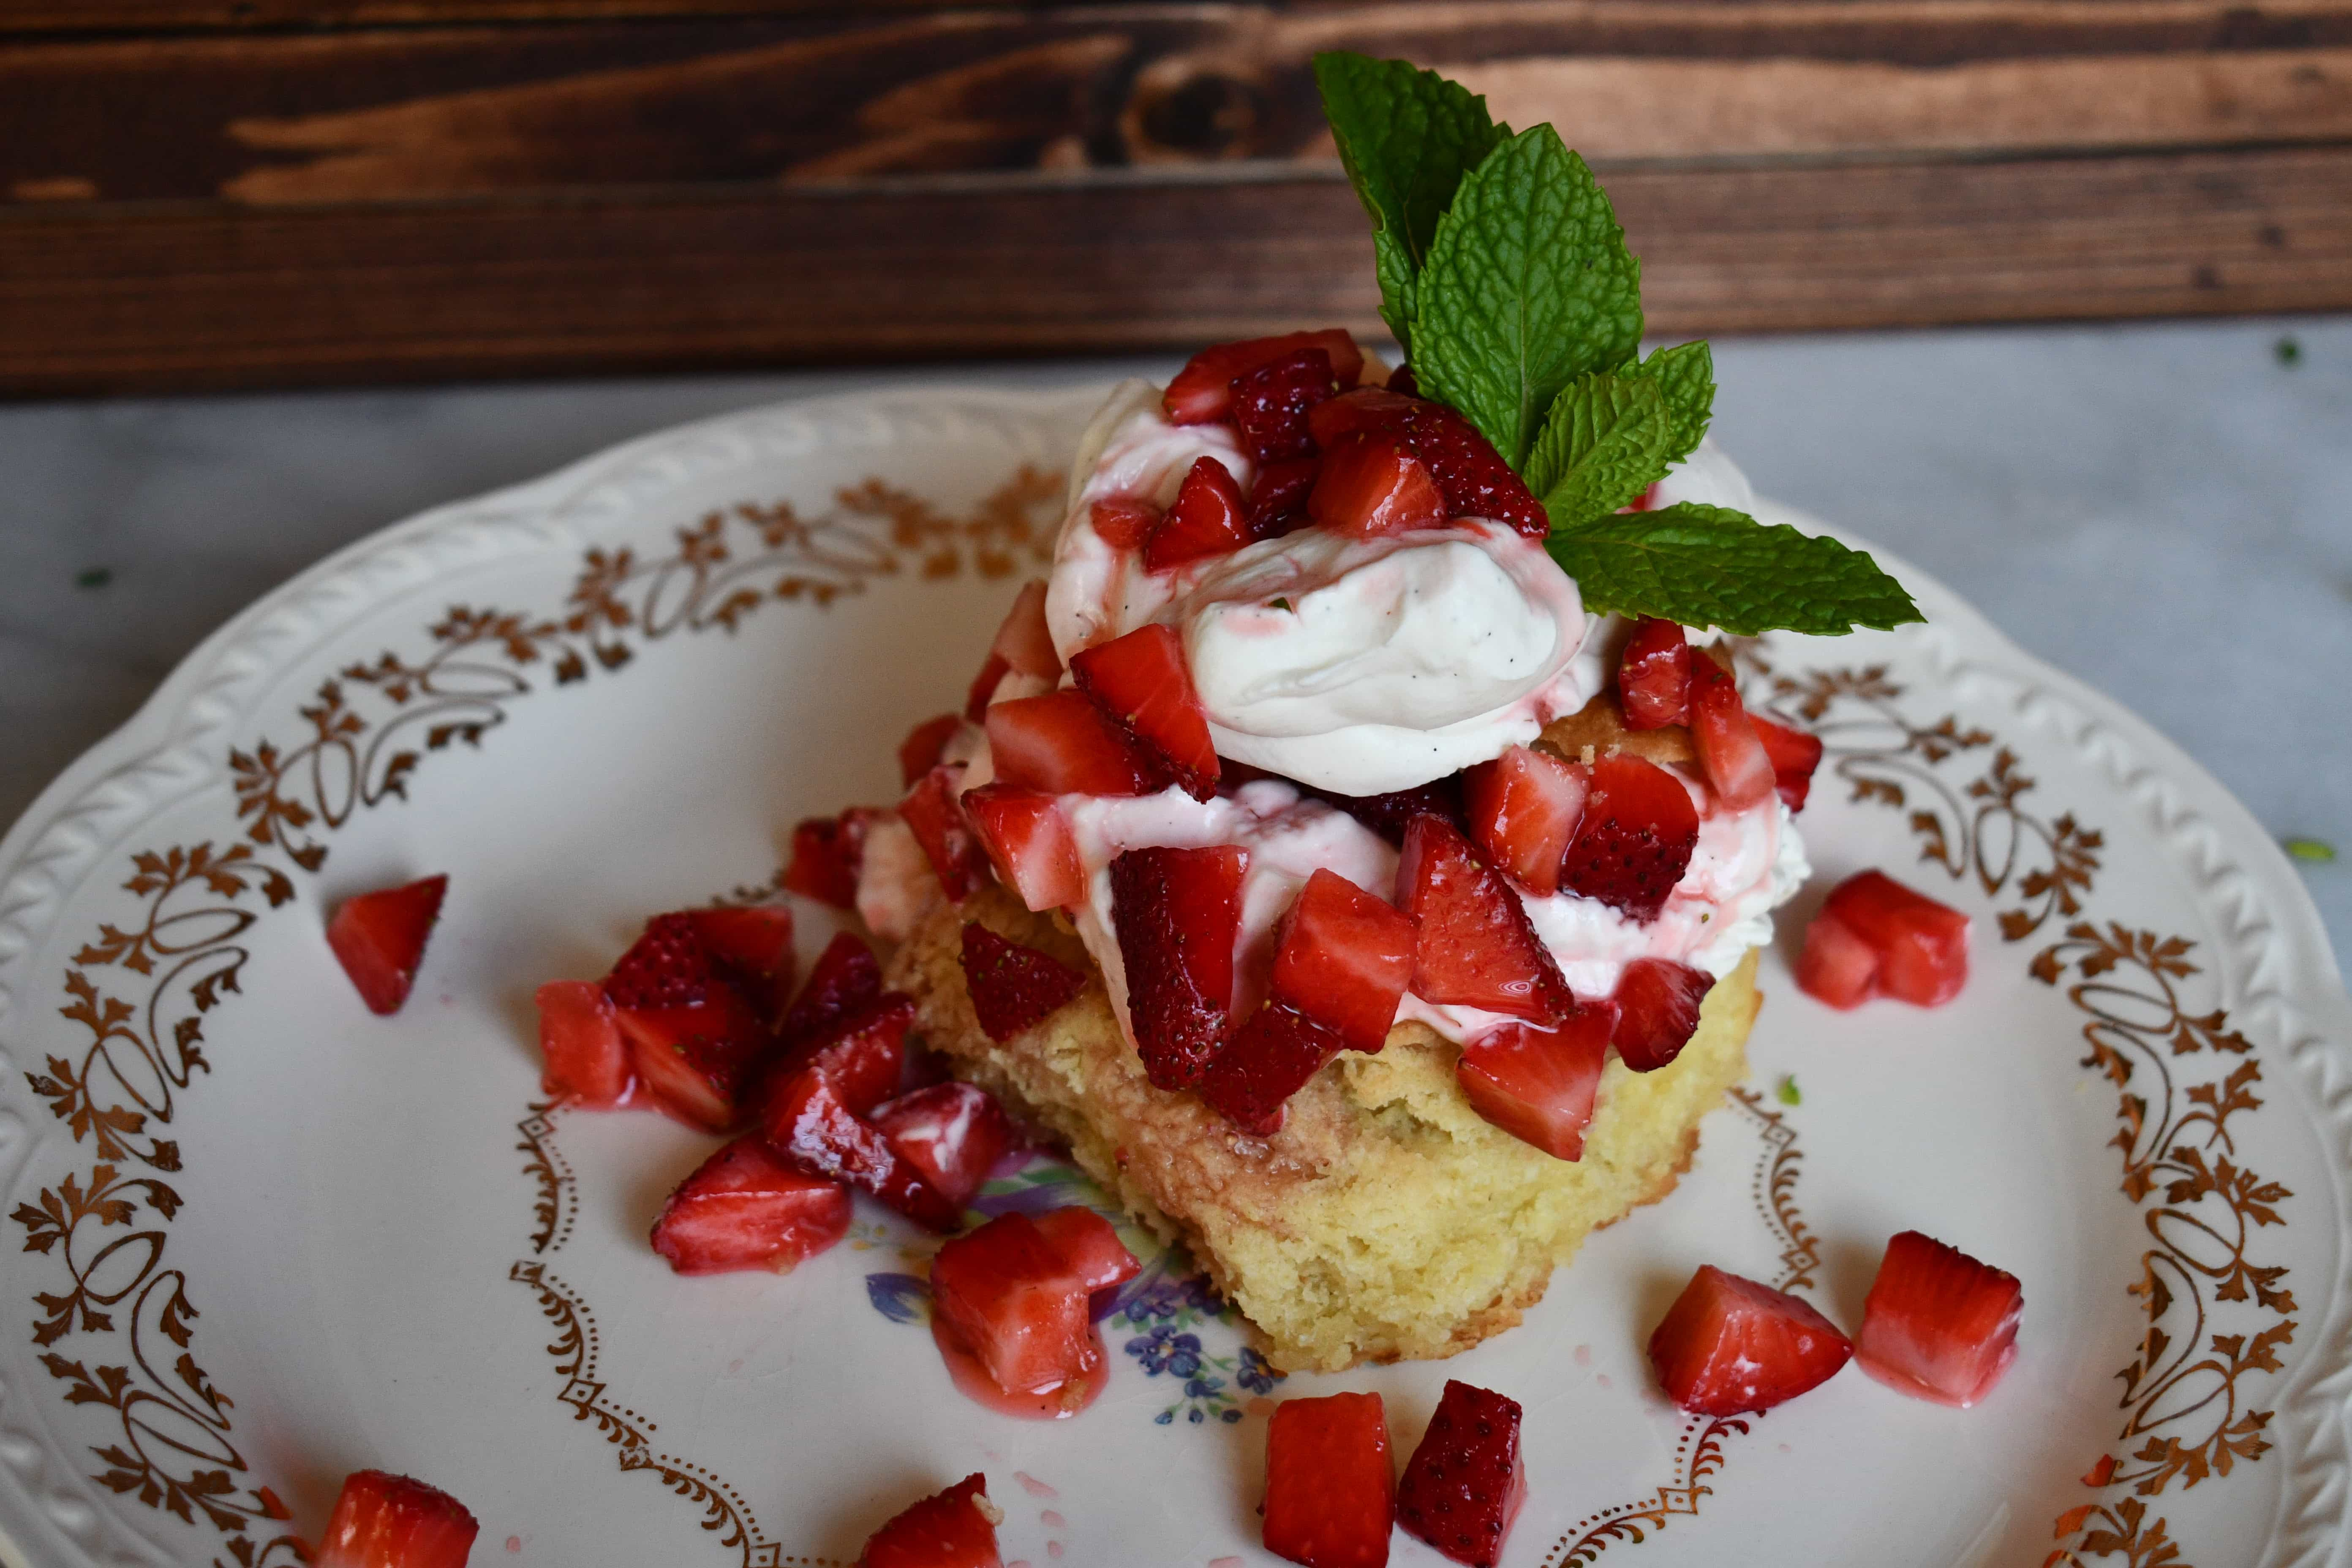 Joanna Gaines Strawberry Shortcake and Homemade Whipped Cream from the Magnolia Table Cookbook